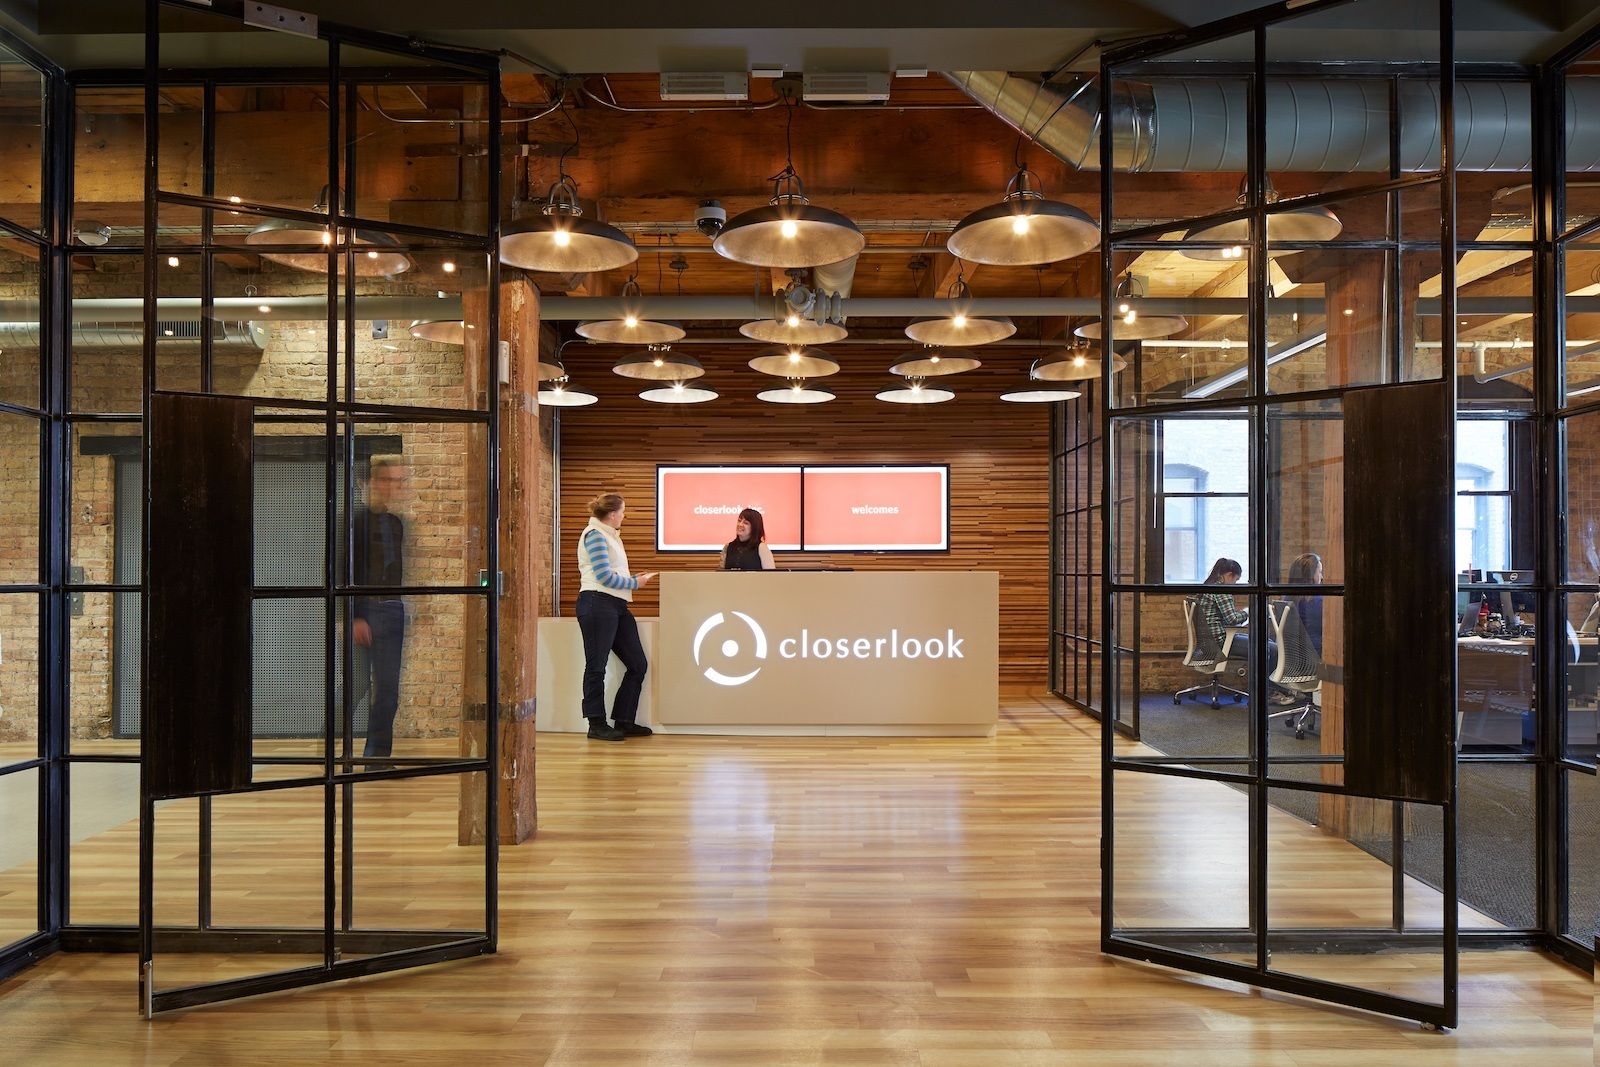 A Peek Inside Closerlook's Stylish Chicago Offices